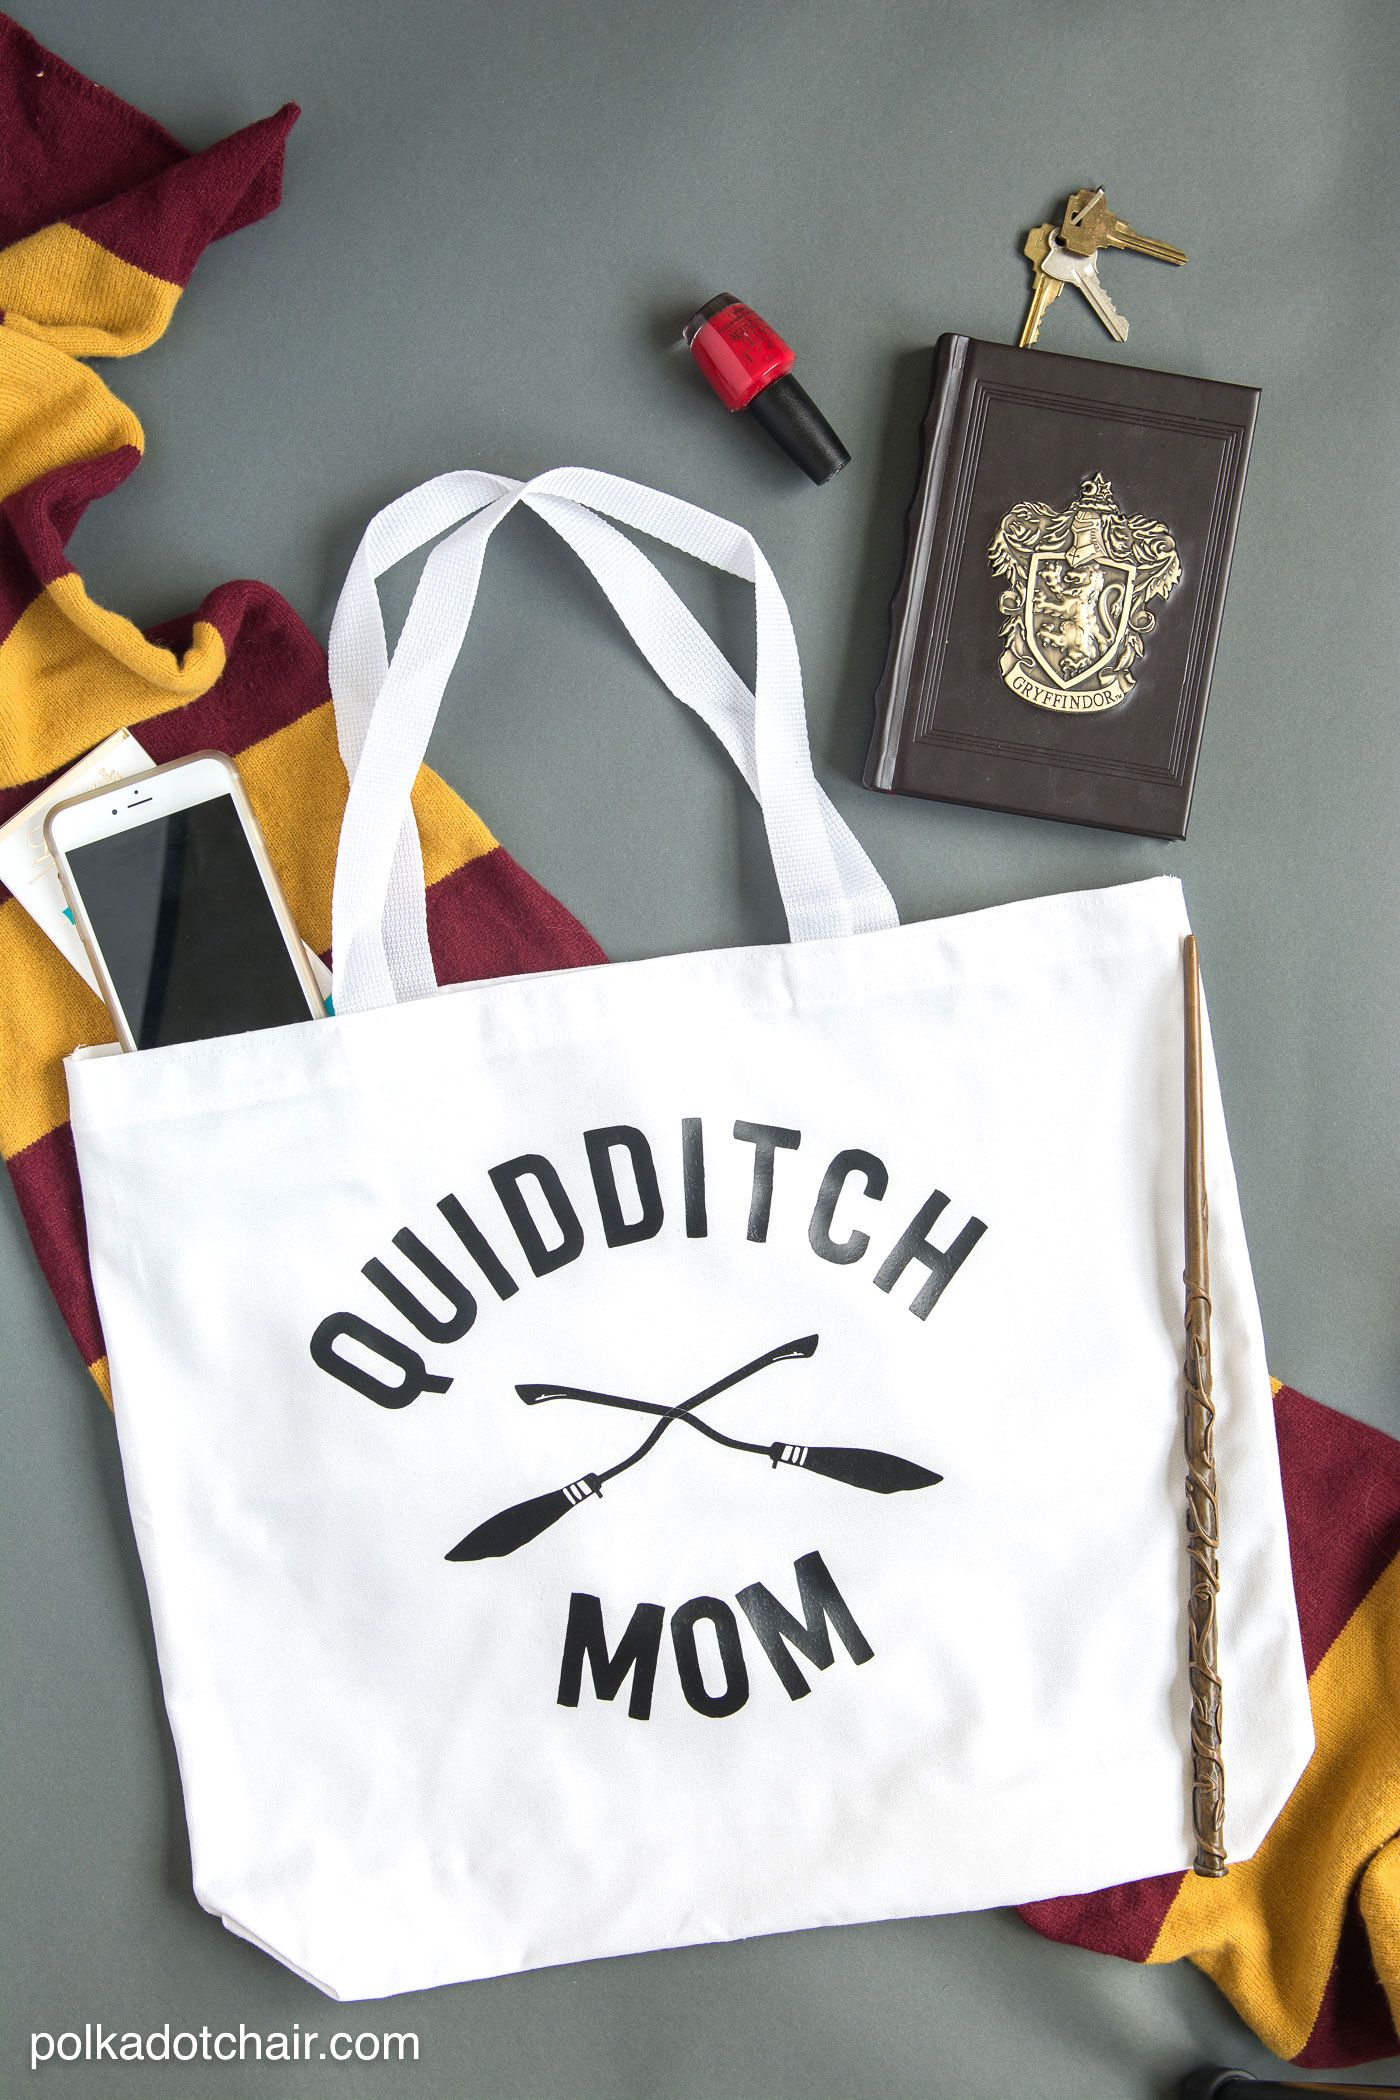 Quidditch mom tote and other harry potter crafts pinterest svg diy yourself a tote bag for a quidditch mom on the go a free harry potter svg file and idea for harry potter crafts make a cute tote bag solutioingenieria Choice Image